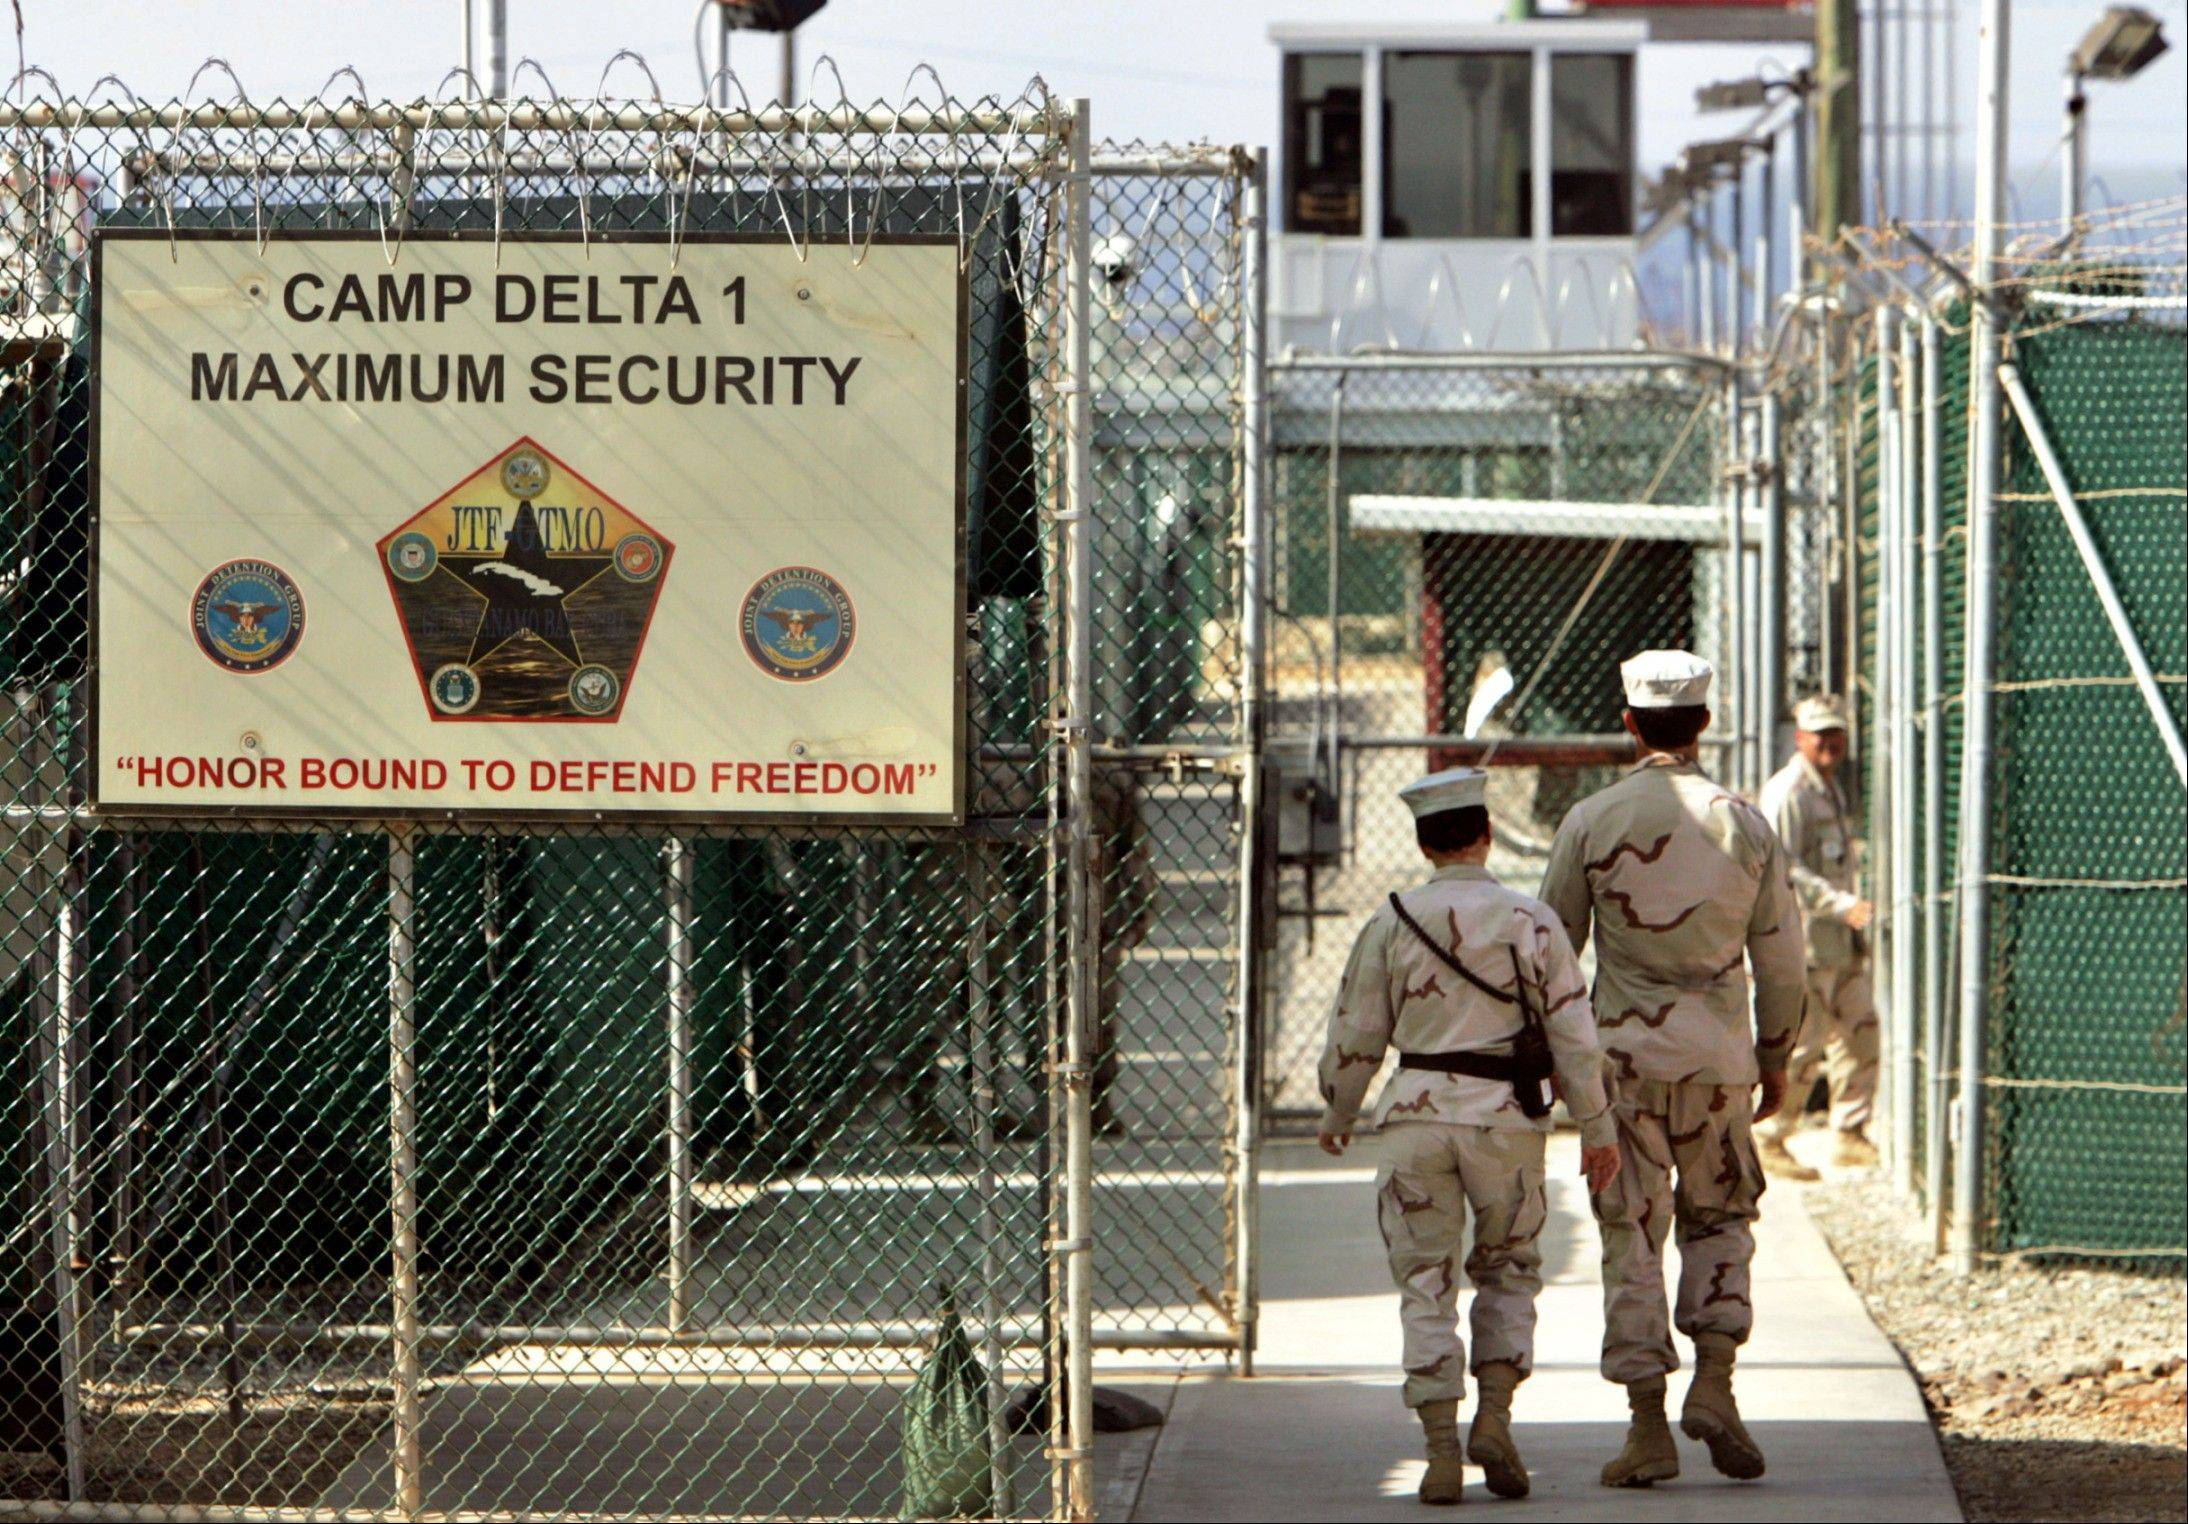 In this June 27, 2006 file photo, reviewed by a U.S. Department of Defense official, U.S. military guards walk within Camp Delta military-run prison, at the Guantanamo Bay U.S. Naval Base, Cuba. Al-Qaida�s leader claims that the terror network will spare no effort to free prisoners held at the US military-run detention center in Cuba.